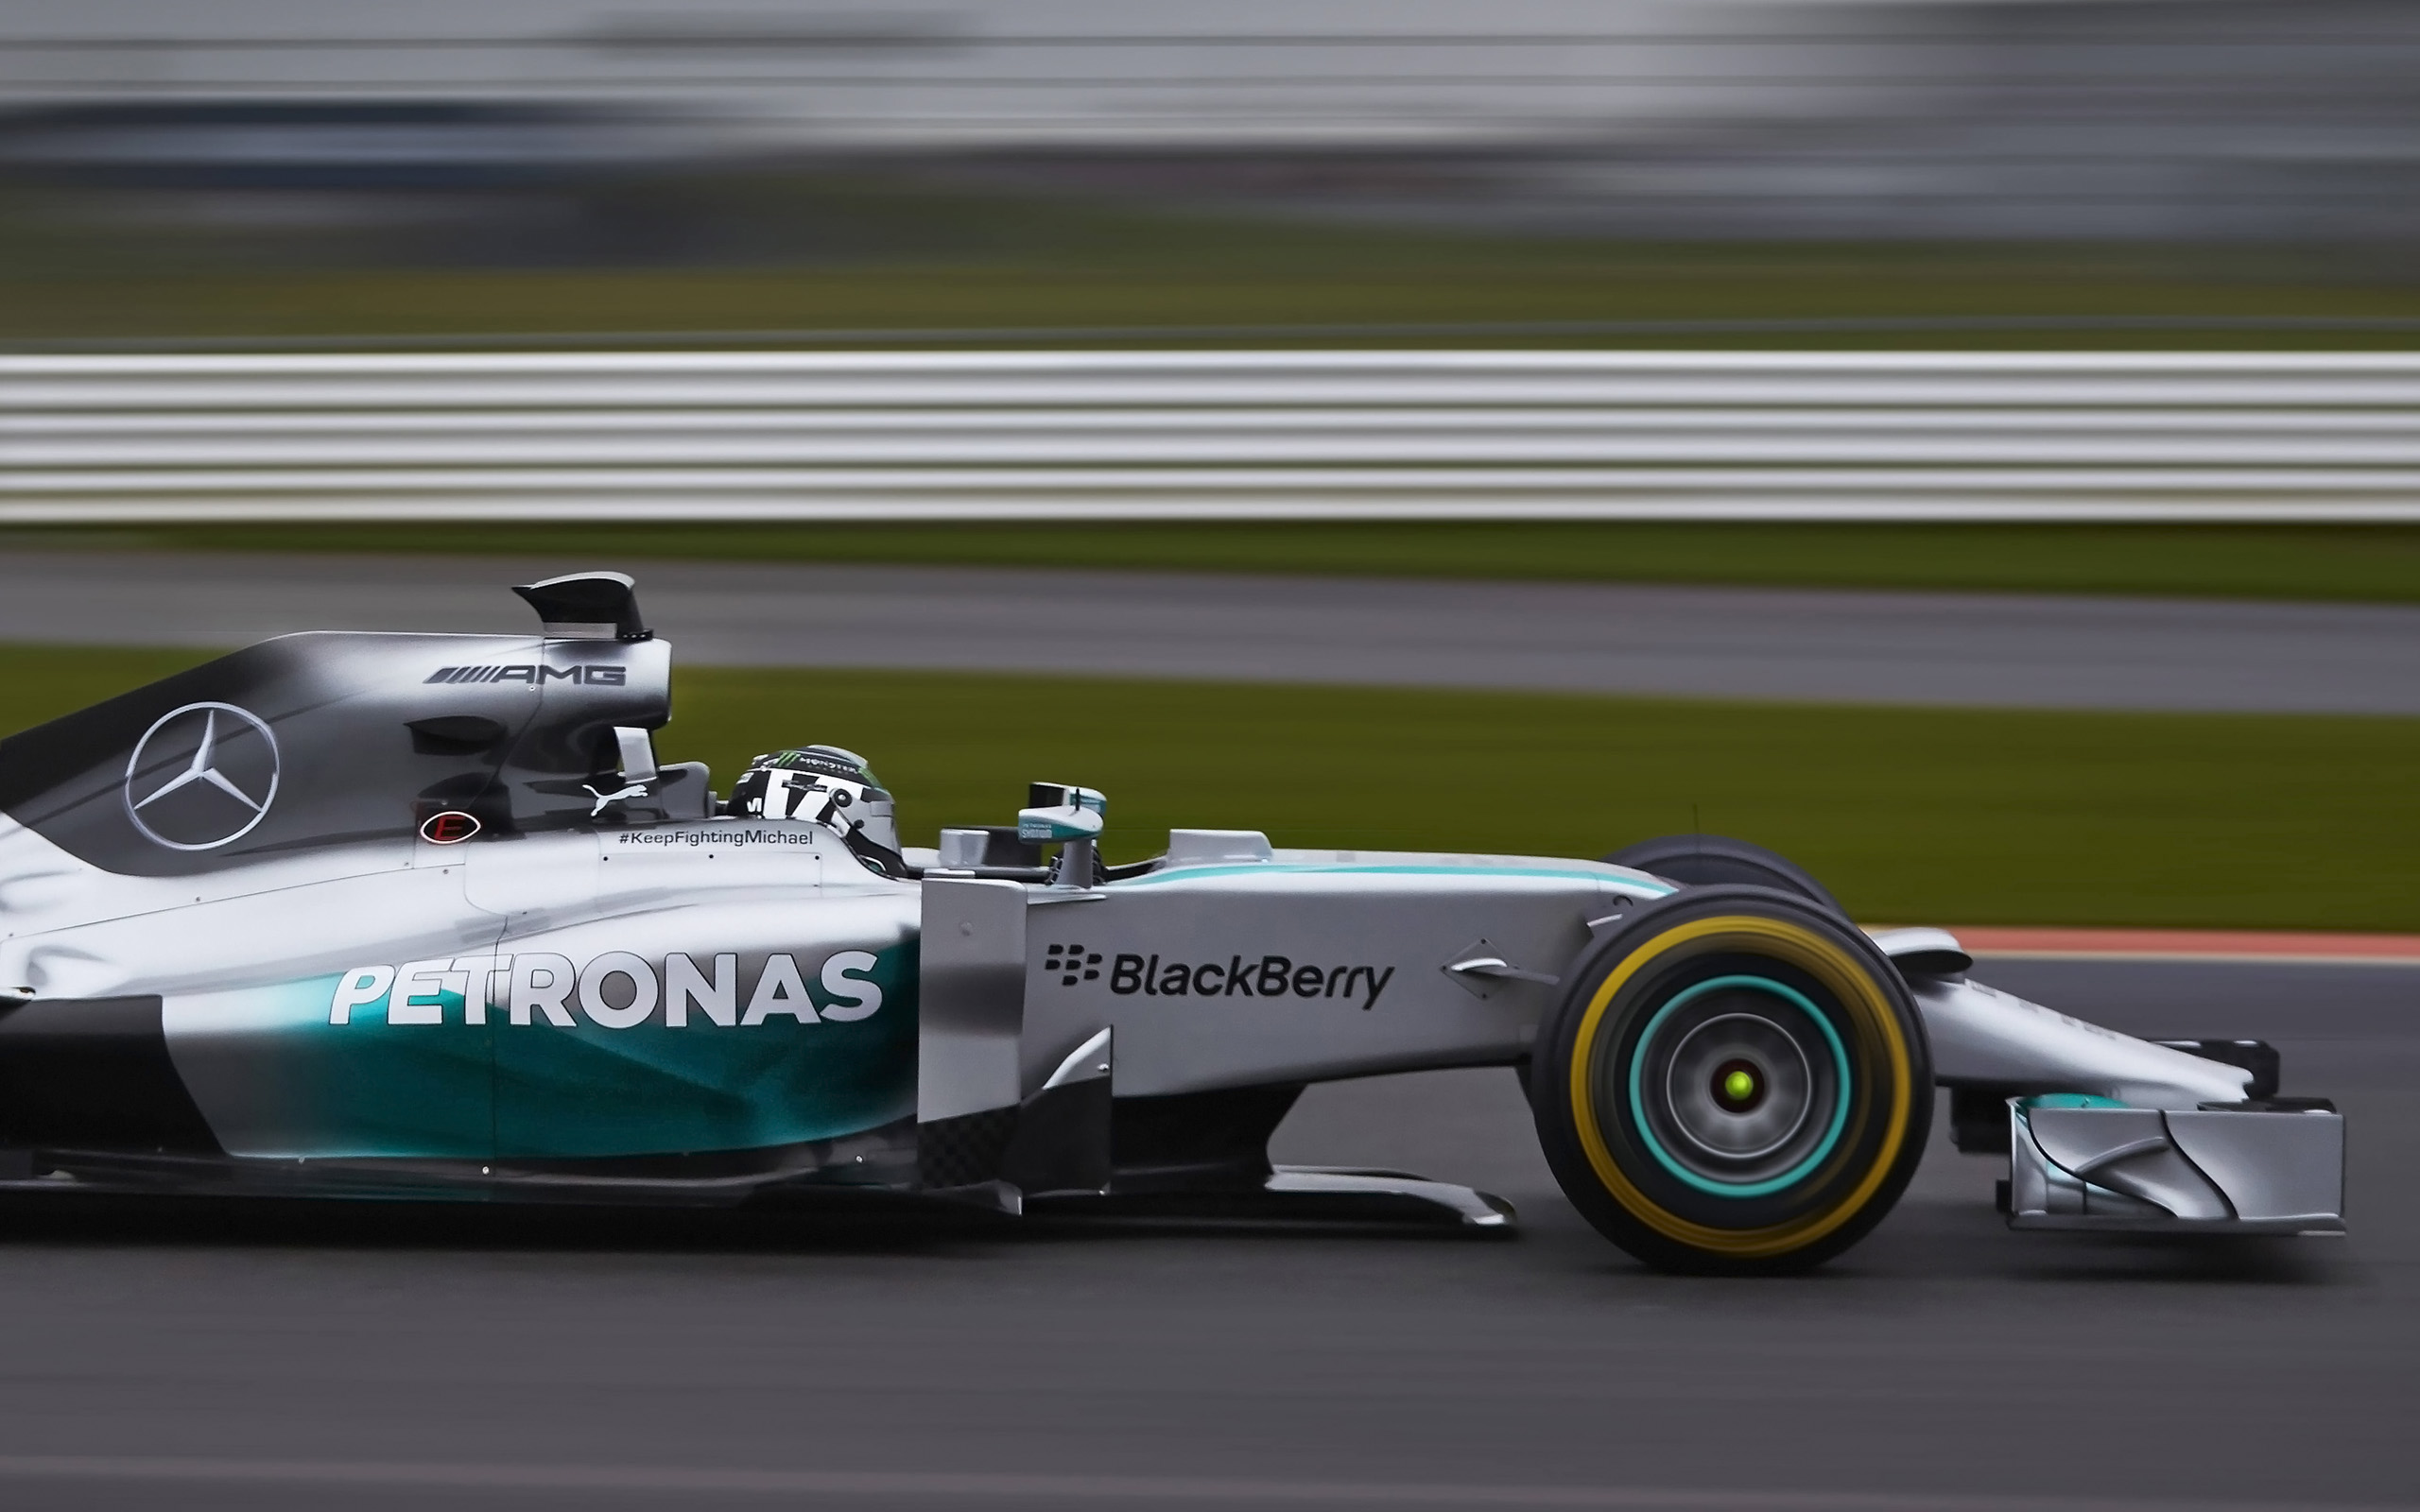 2014 Mercedes AMG Petronas F1 W05 Wallpaper | HD Car Wallpapers